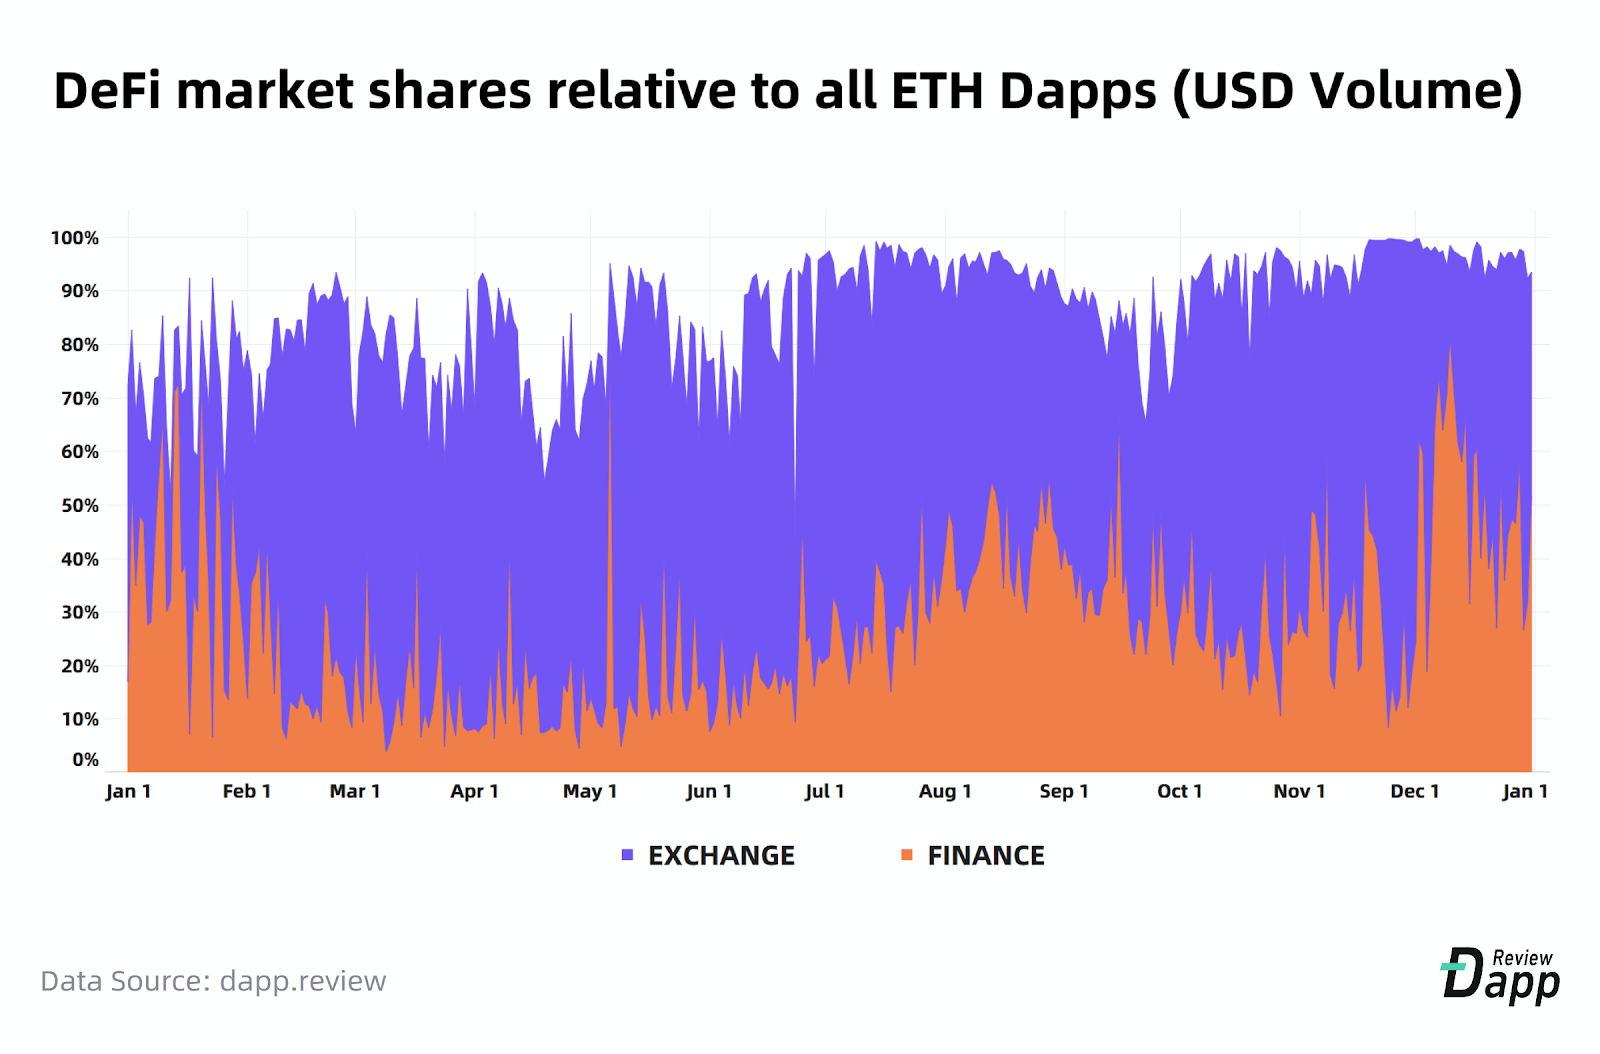 DeFi market shares relative to all ETH Dapps